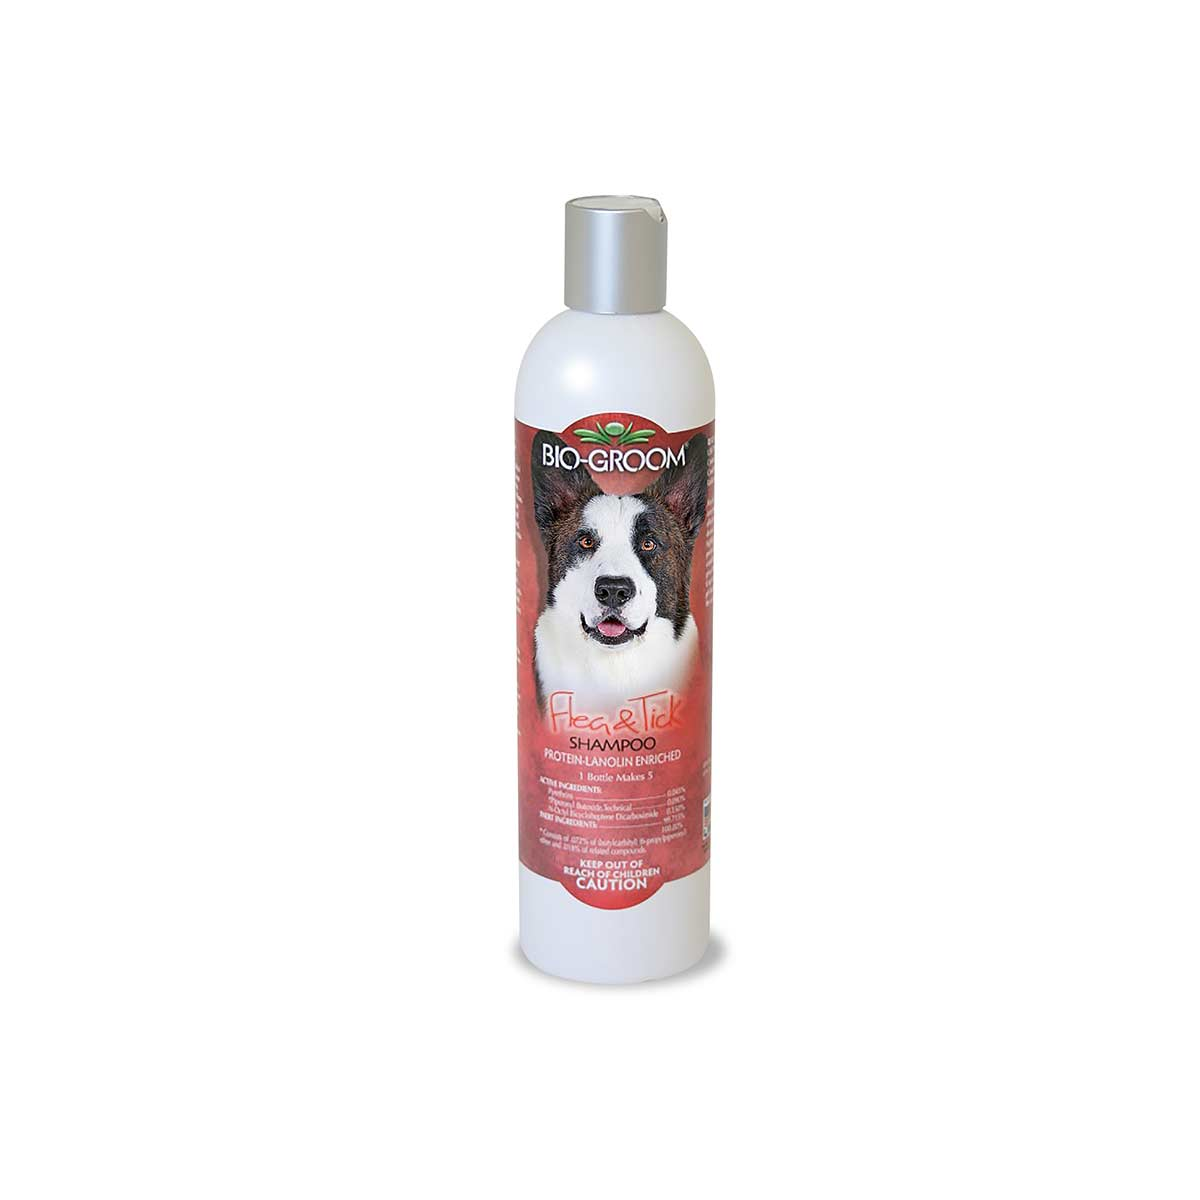 Bio-Groom Flea & Tick Dog Shampoo 12 Ounce 4:1